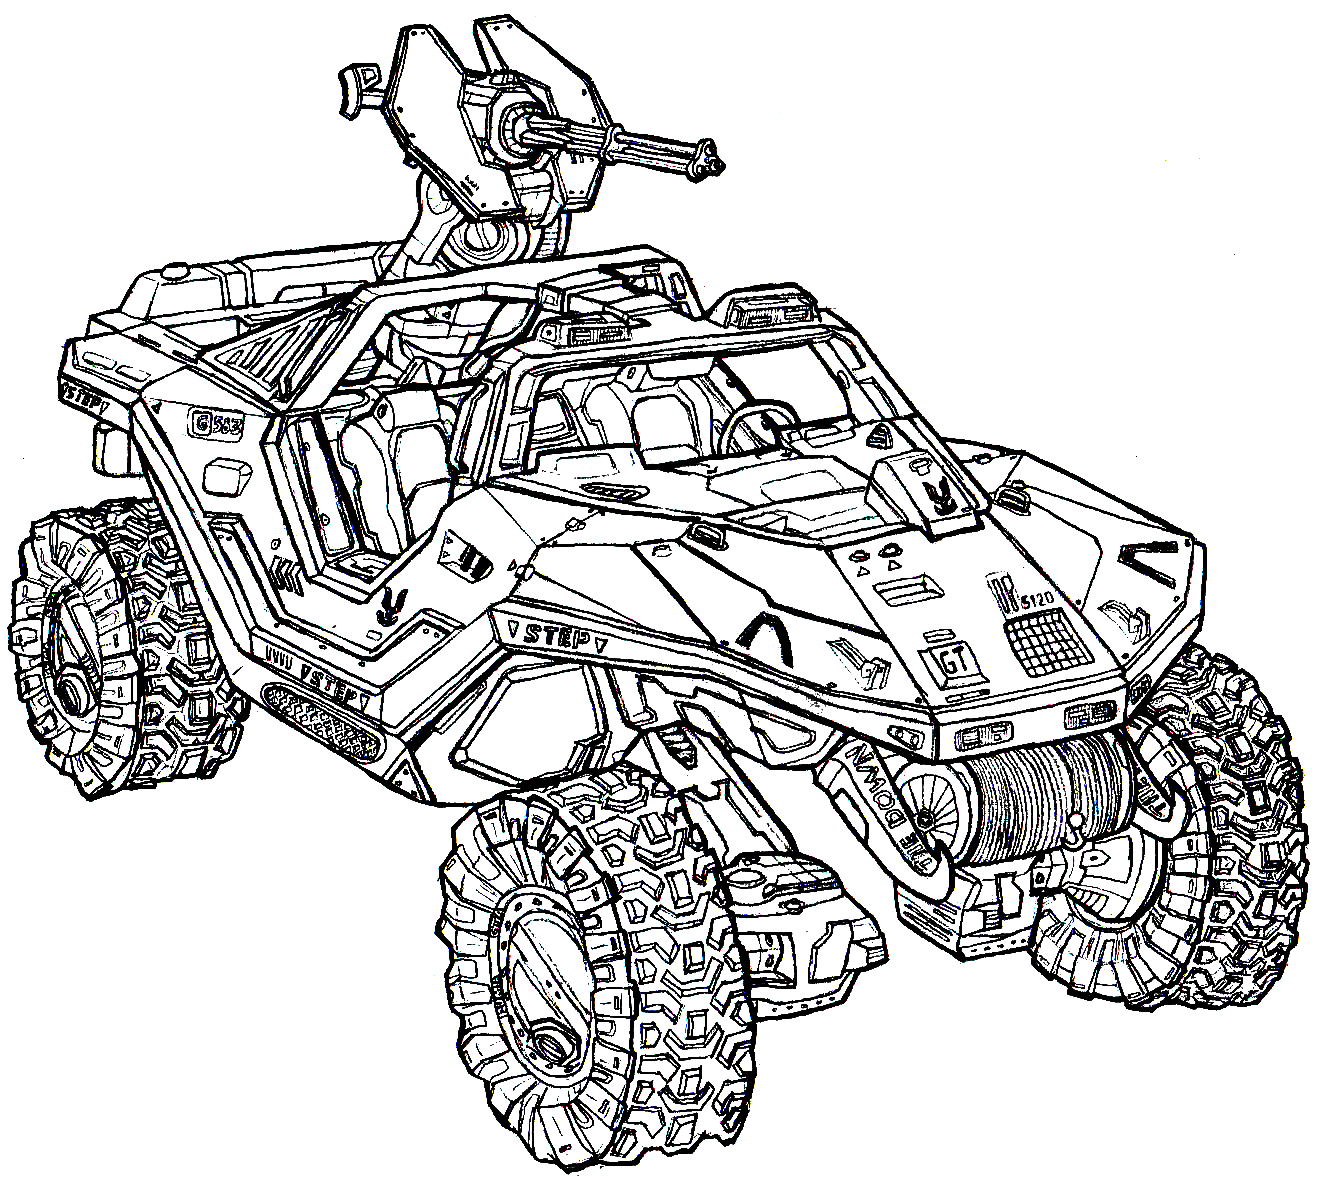 Heavy Xbox Halo Reach Coloring | Free| Halo Reach | Kids Coloring | 1182x1332